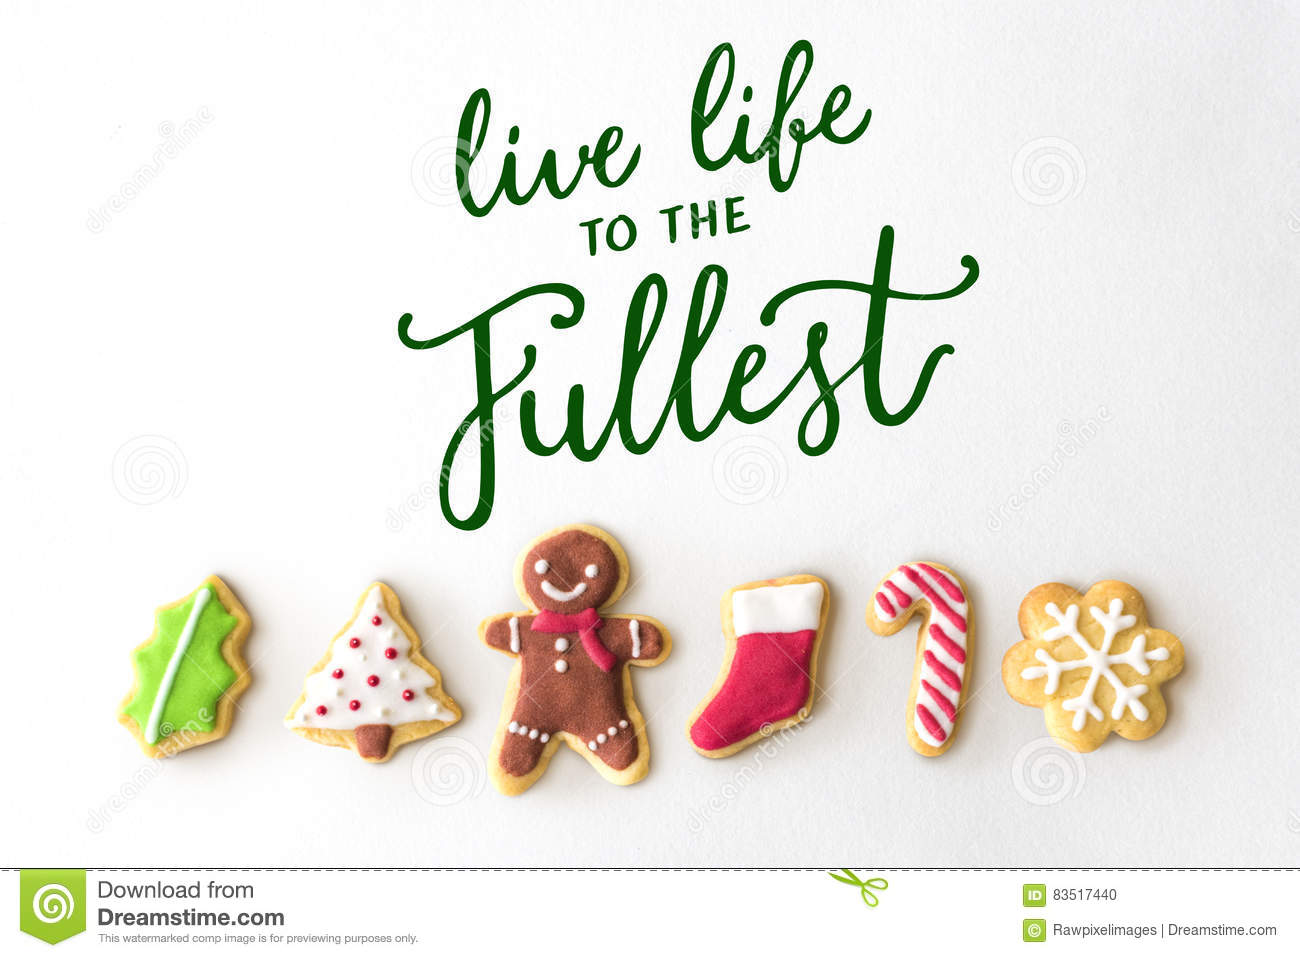 Live Life To The Fullest Quotes Live Life To The Fullest Quote Message Concept Stock Photo  Image